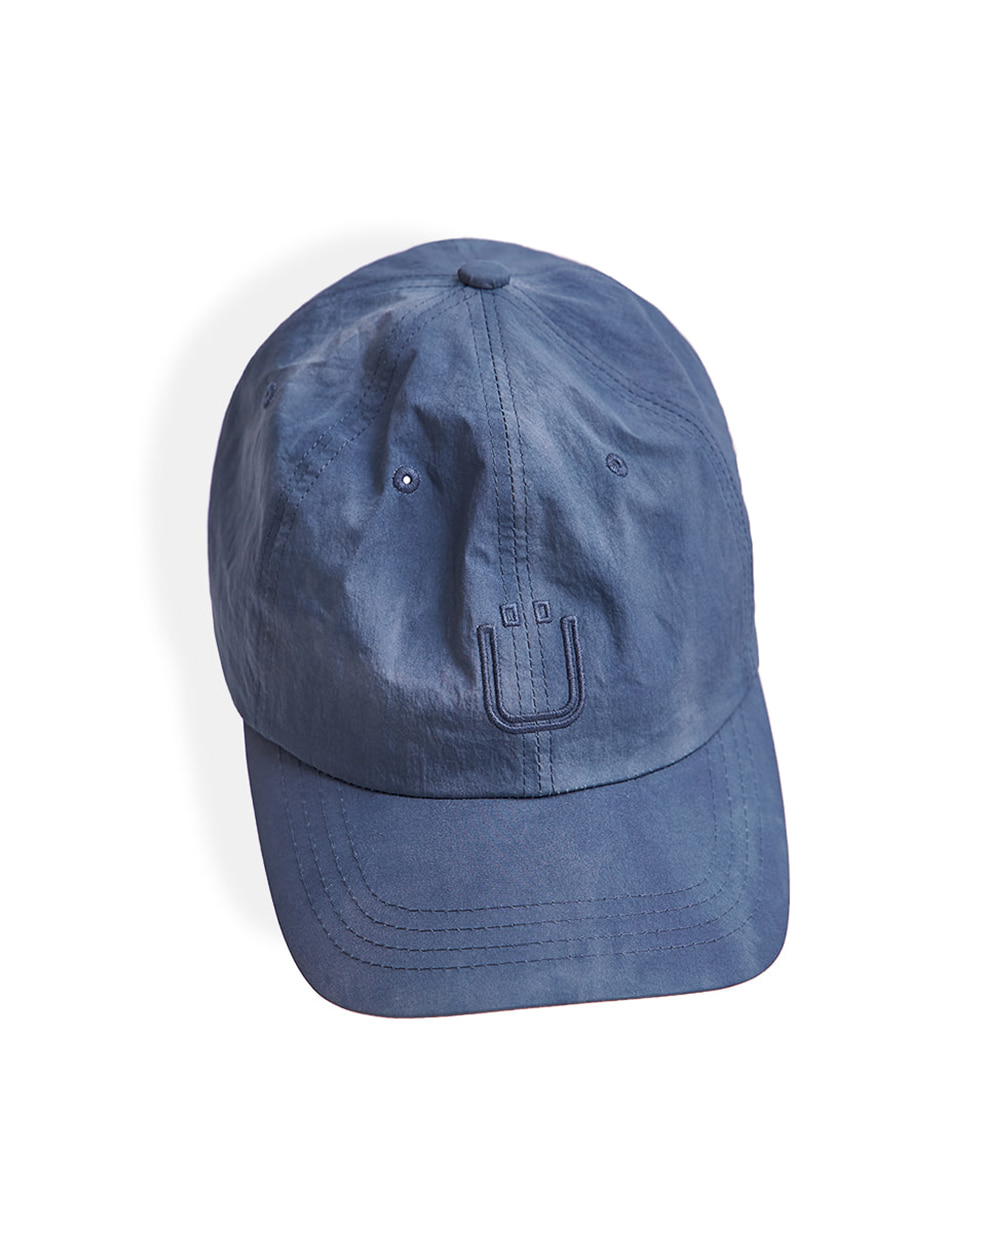 언어펙티드 DRAWSTRING BALL CAP (Ocean Blue)